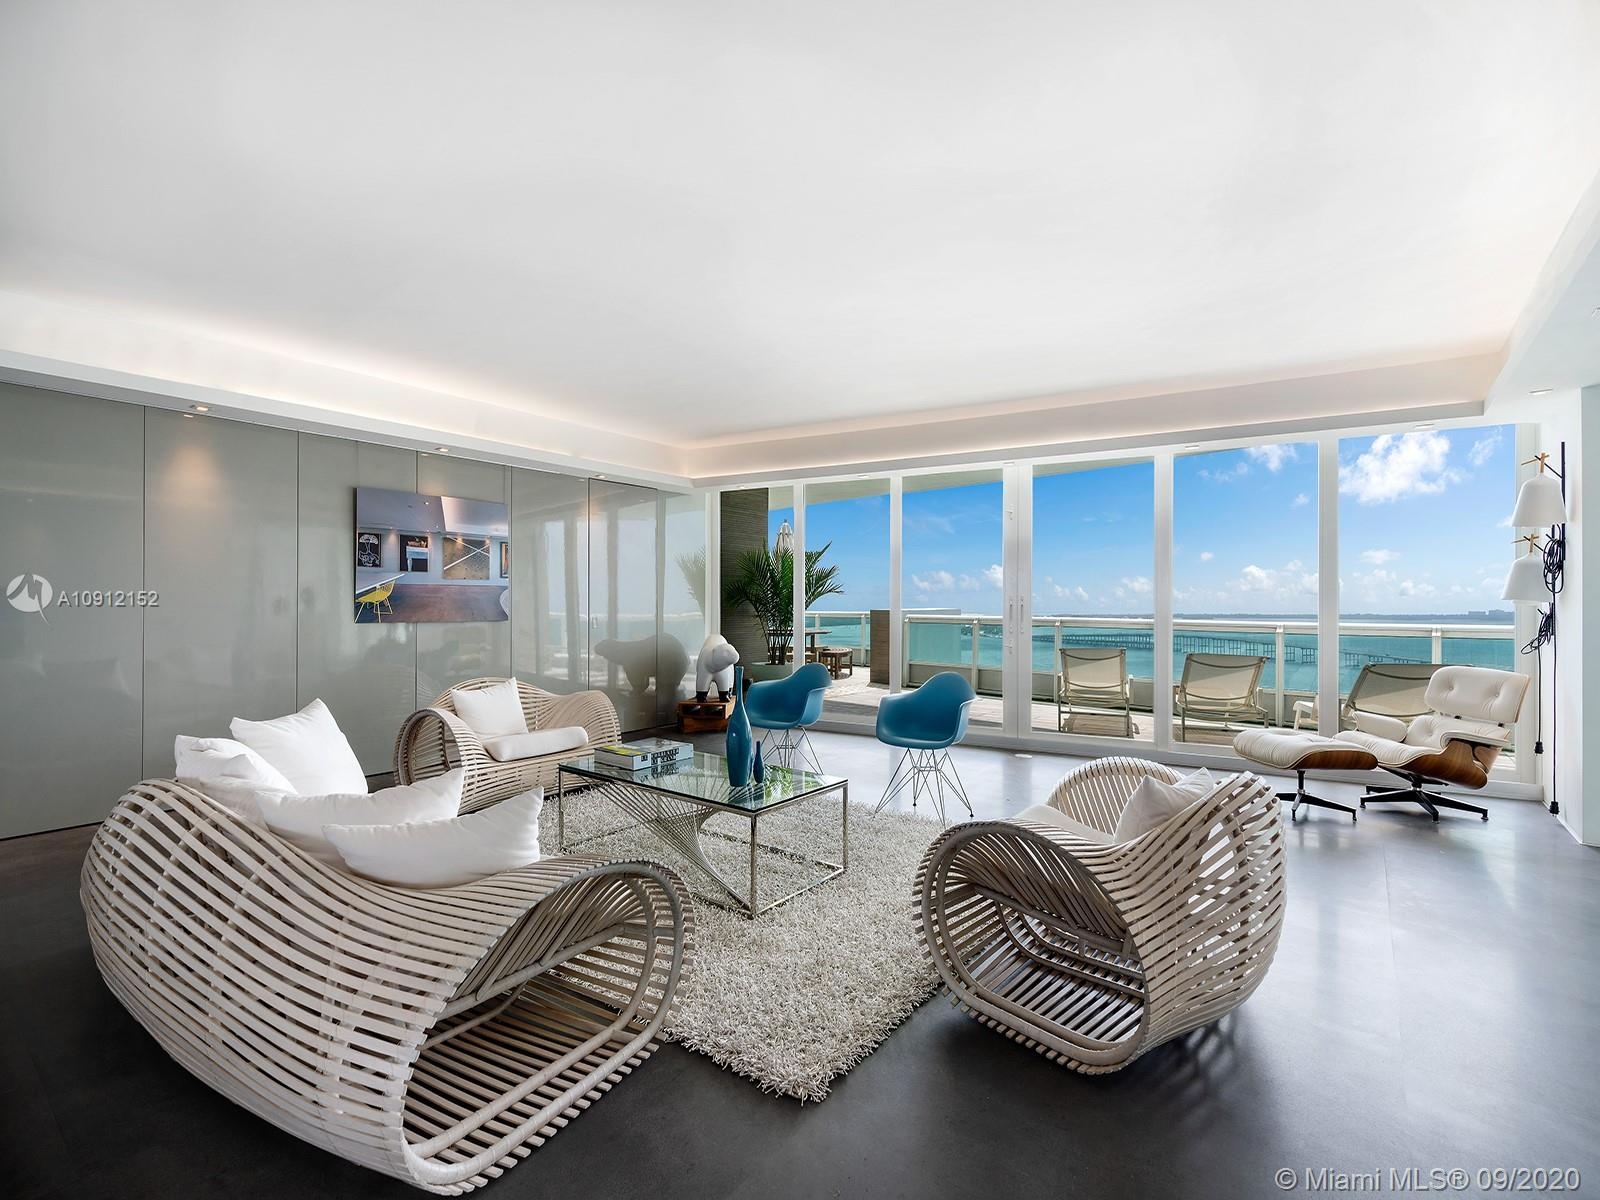 This luxe residence on the 27th floor of the Santa Maria tower on Miami's Brickell Avenue was recently completely renovated to become a serene contemporary space. With spectacular views to the east and west, overlooking Biscayne Bay, the Miami skyline, and the ocean in the distance, this floor-spanning unit is one of only two in the building with extra-deep, landscaped terraces like this. A centerpiece of the unit is the glass wine cellar, which is connected to the full wet bar. The Santa Maria offers a resident clubhouse in a historic mansion on the lush grounds, a large fitness center on the building's rooftop, a bayfront pool, a marina, tennis courts, and a location in the heart of Miami, with excellent access to the excitement of Downtown Miami and Coconut Grove.